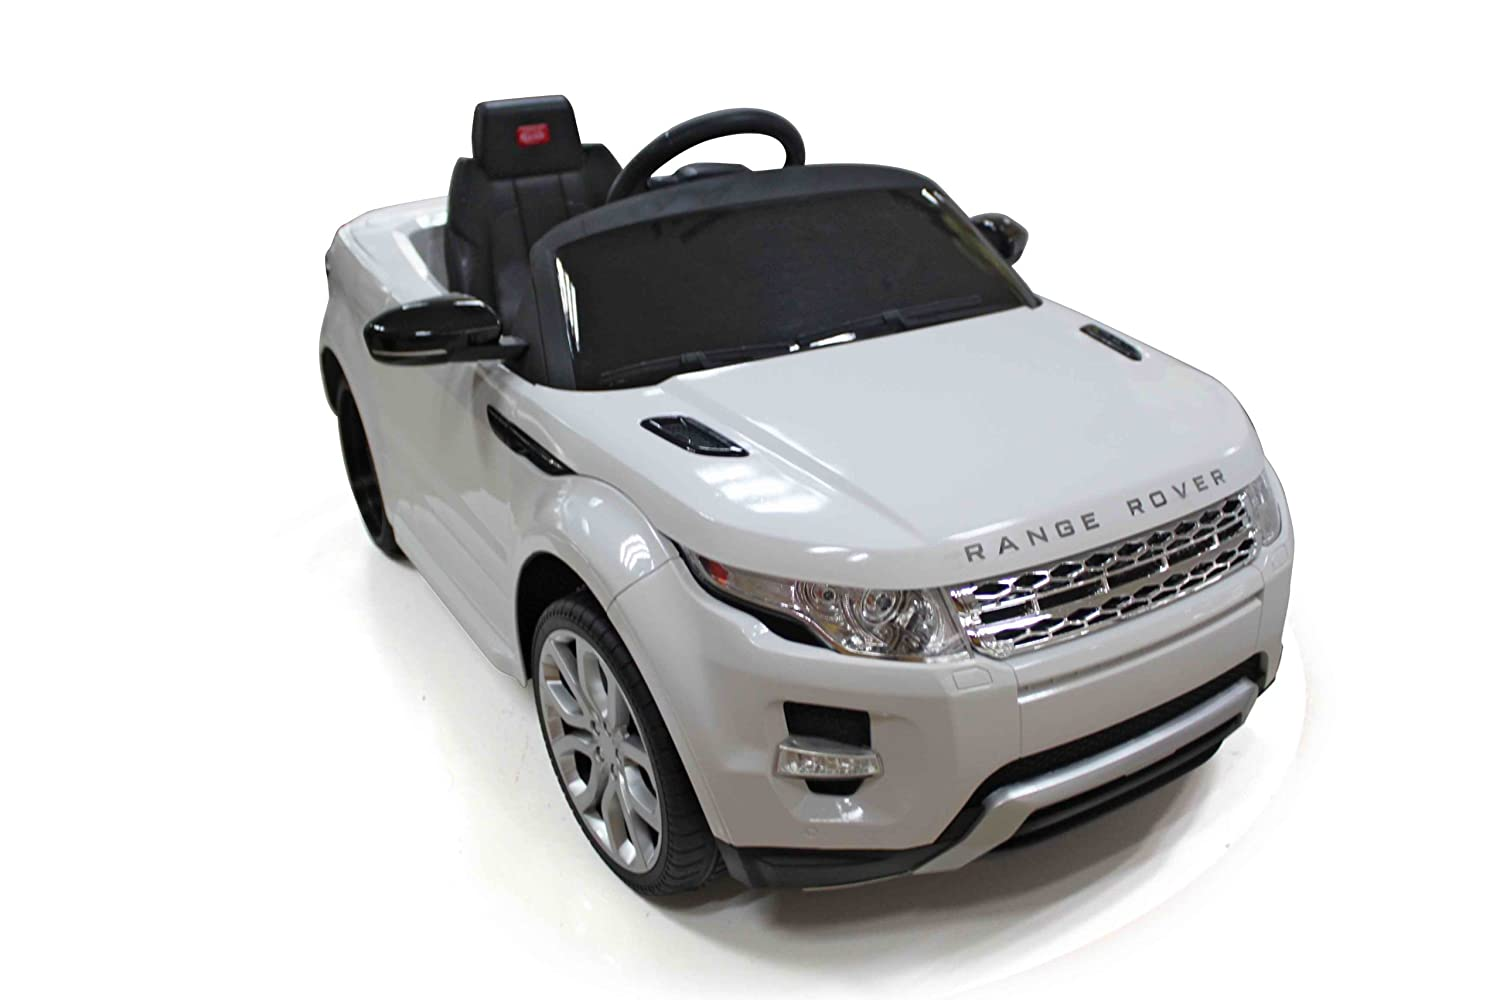 range rover ride on toy car with remote control wow blog. Black Bedroom Furniture Sets. Home Design Ideas